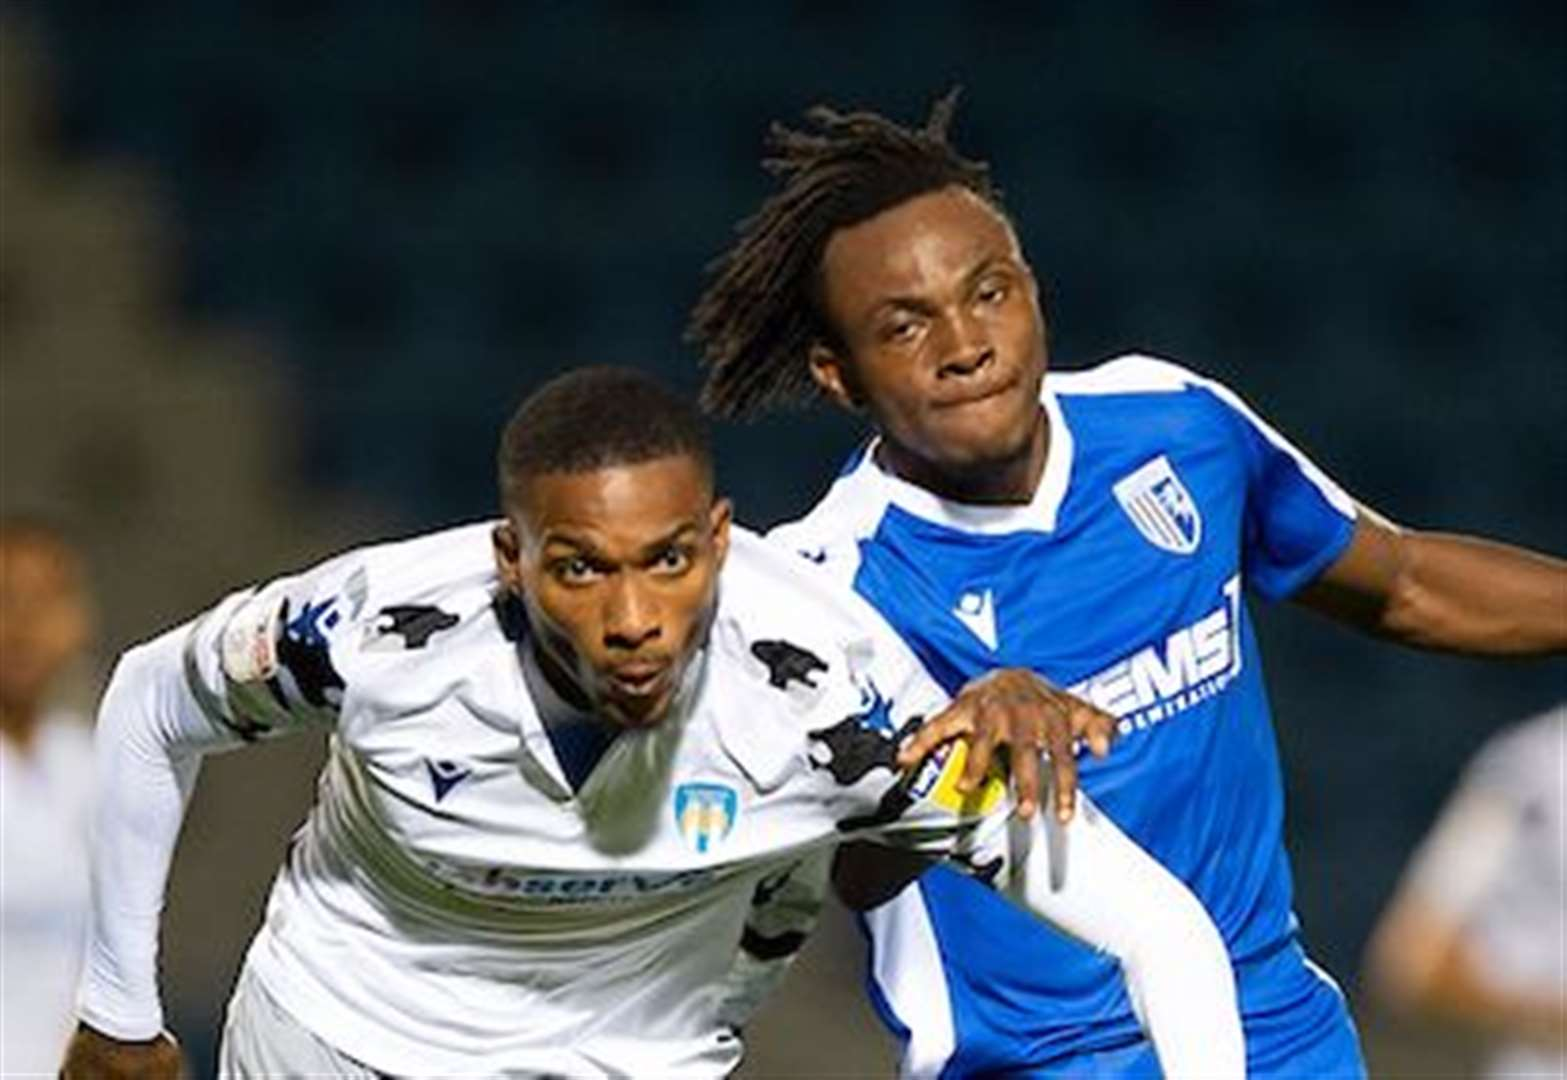 Report: Gills lose out in Trophy opener